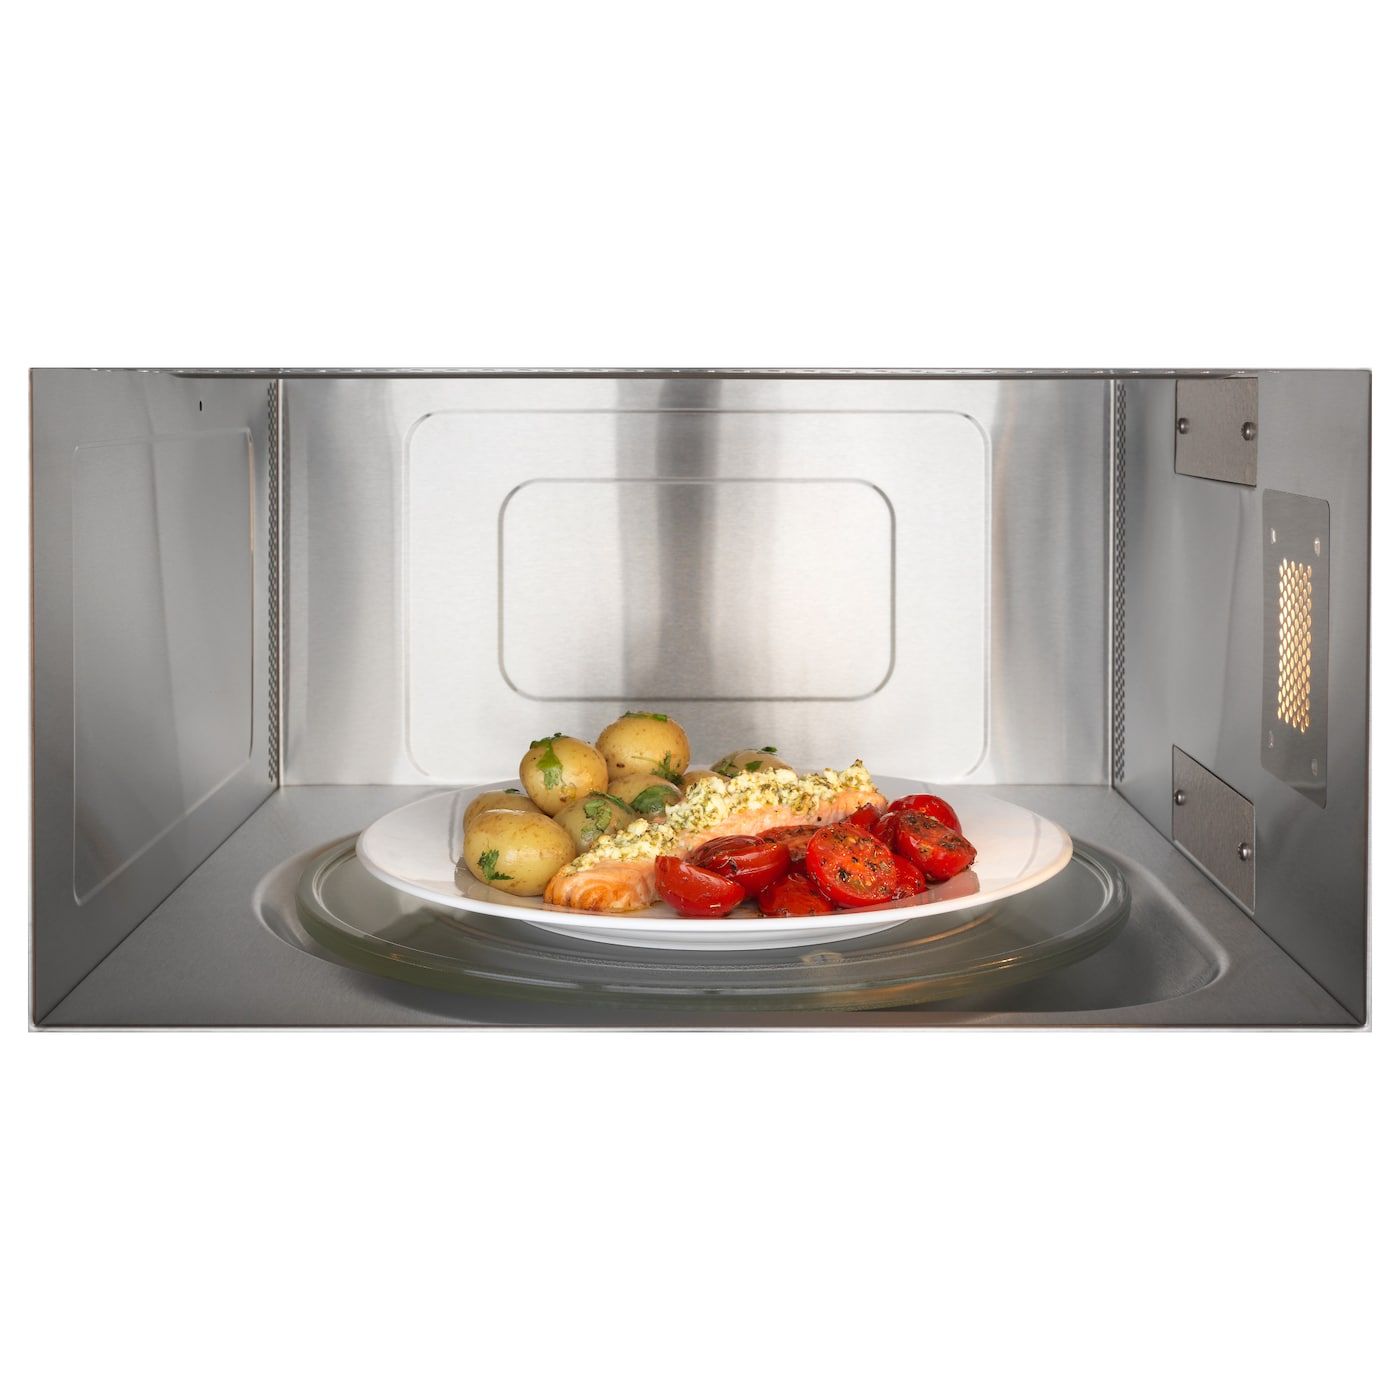 IKEA BEJUBLAD microwave oven 5 year guarantee. Read about the terms in the guarantee brochure.